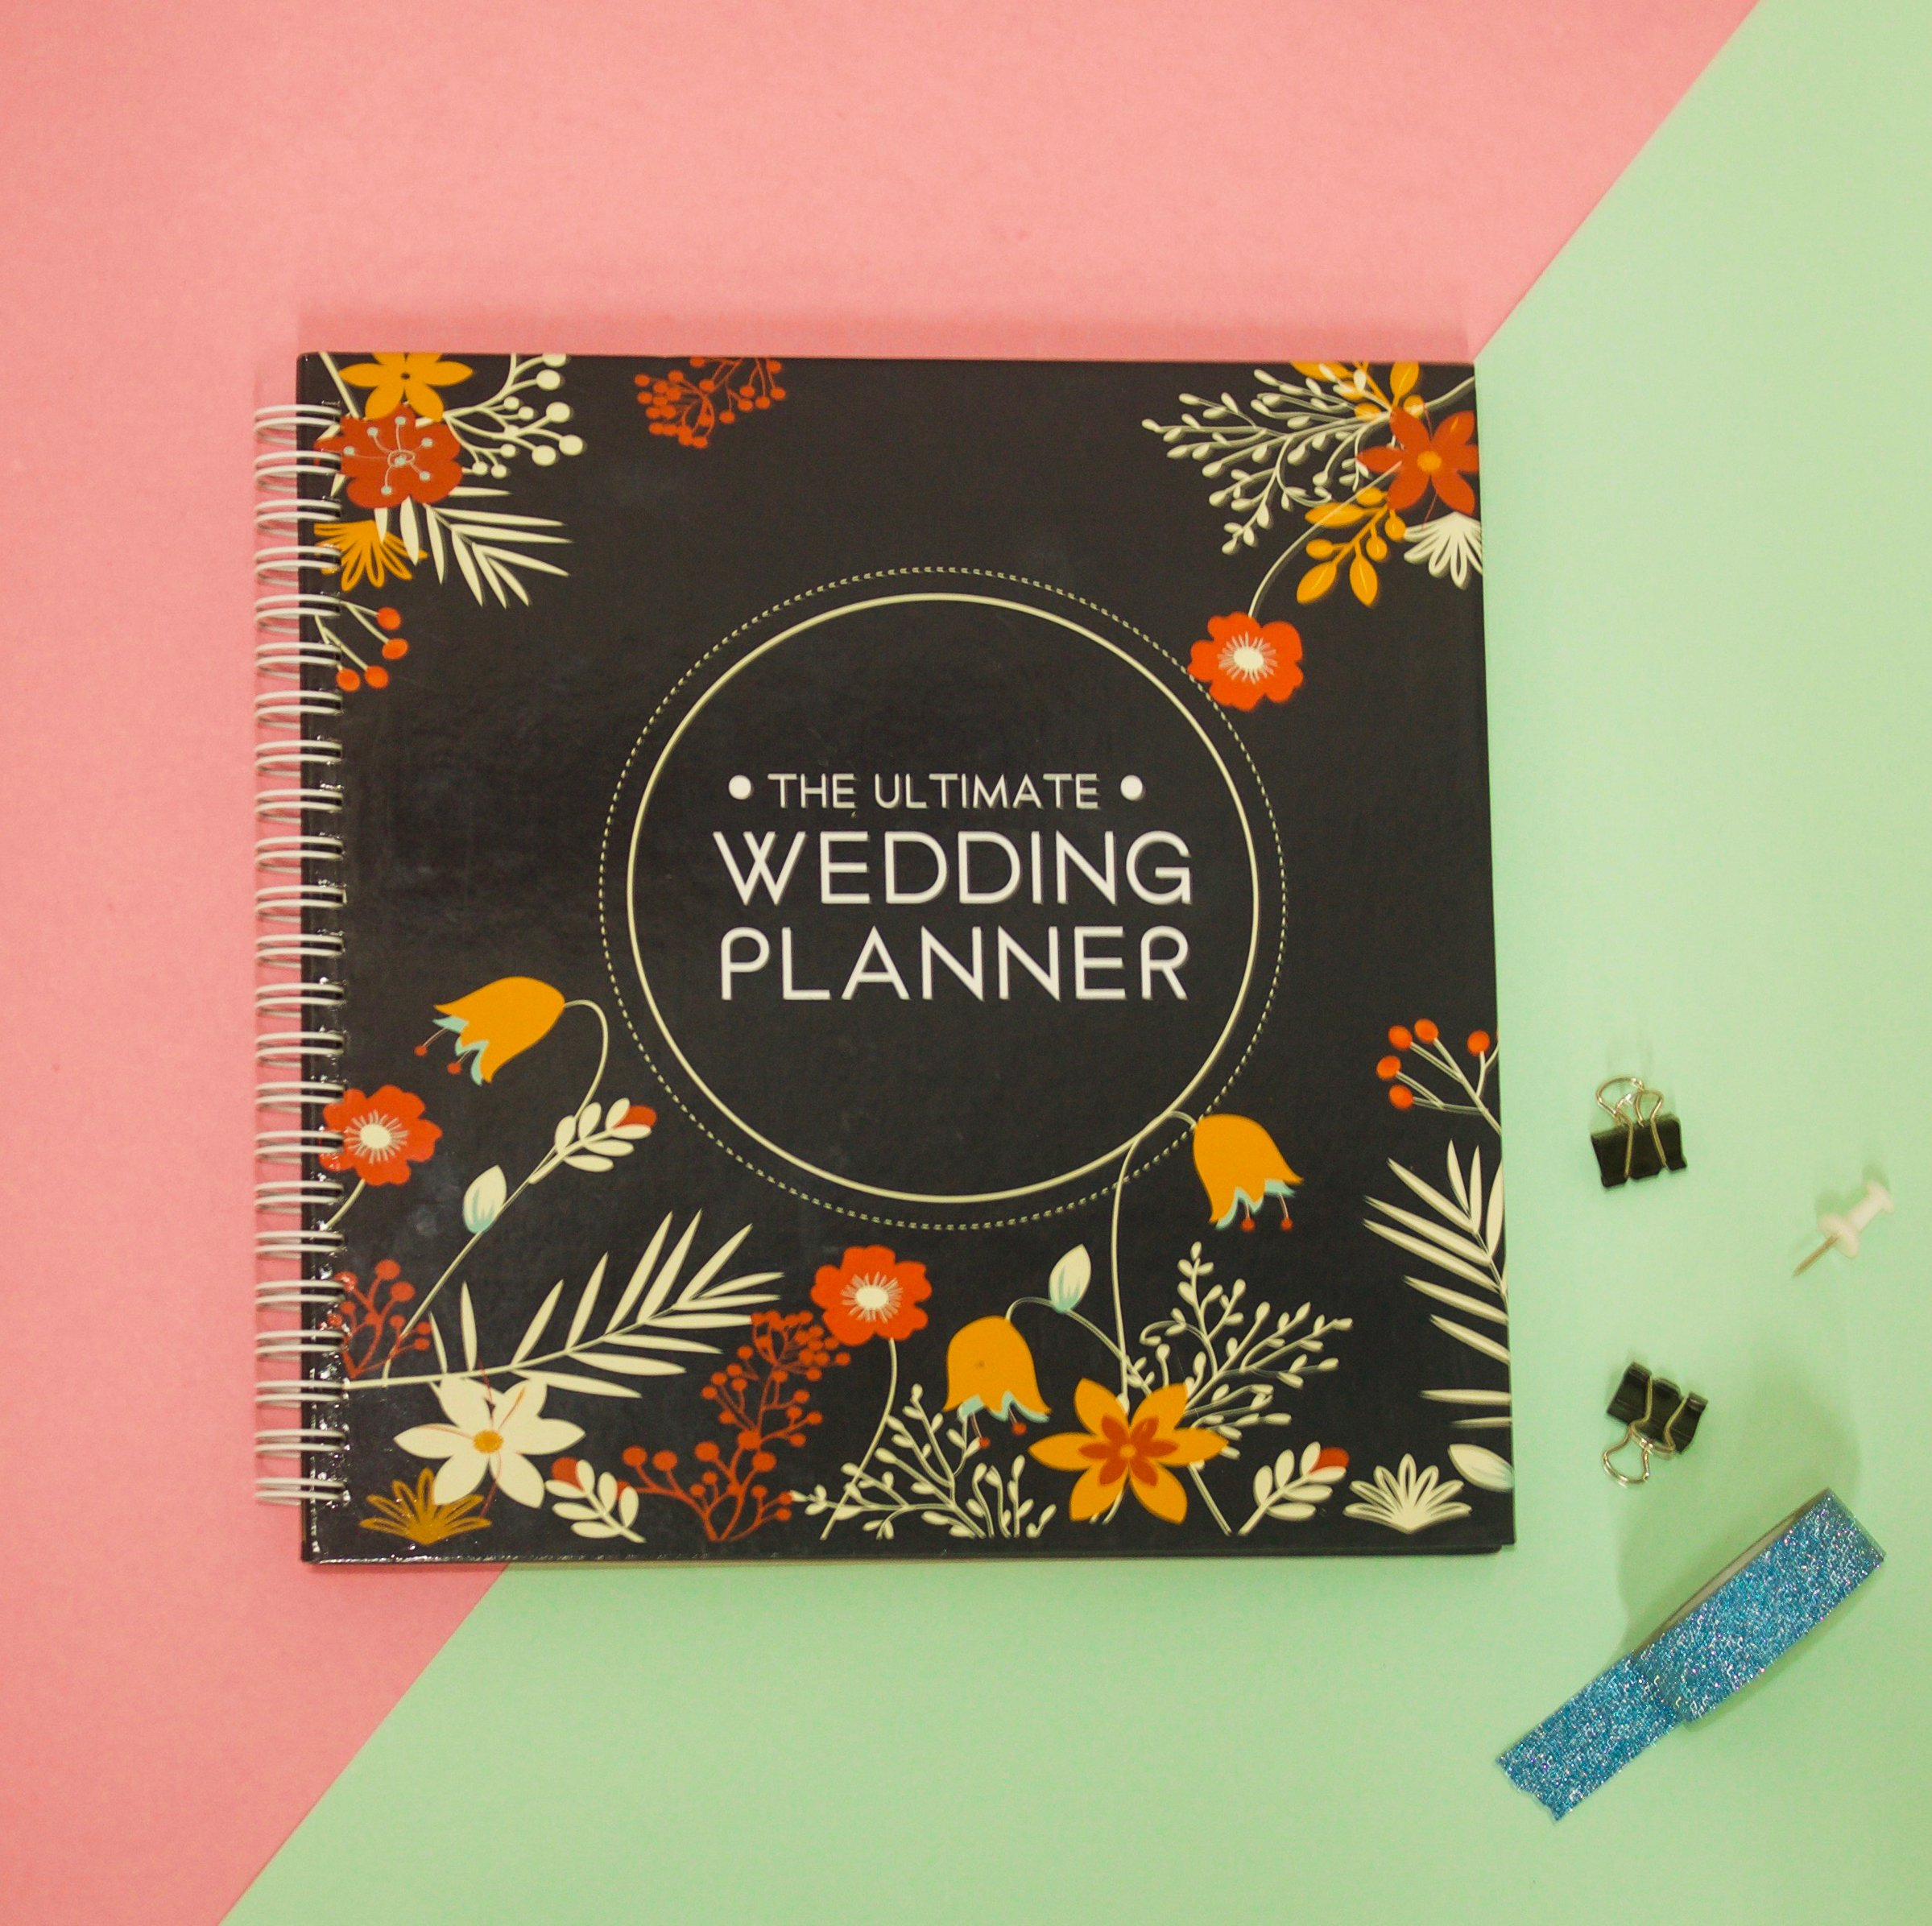 The Ultimate Wedding Planner – A Complete 80 Pages Hardcover Organizer that Includes Checklists, Party Planner, Budget Organizer, Honeymoon and More to Help You Organize The Wedding of Your Dreams! by Unconditional Rosie (Image #7)